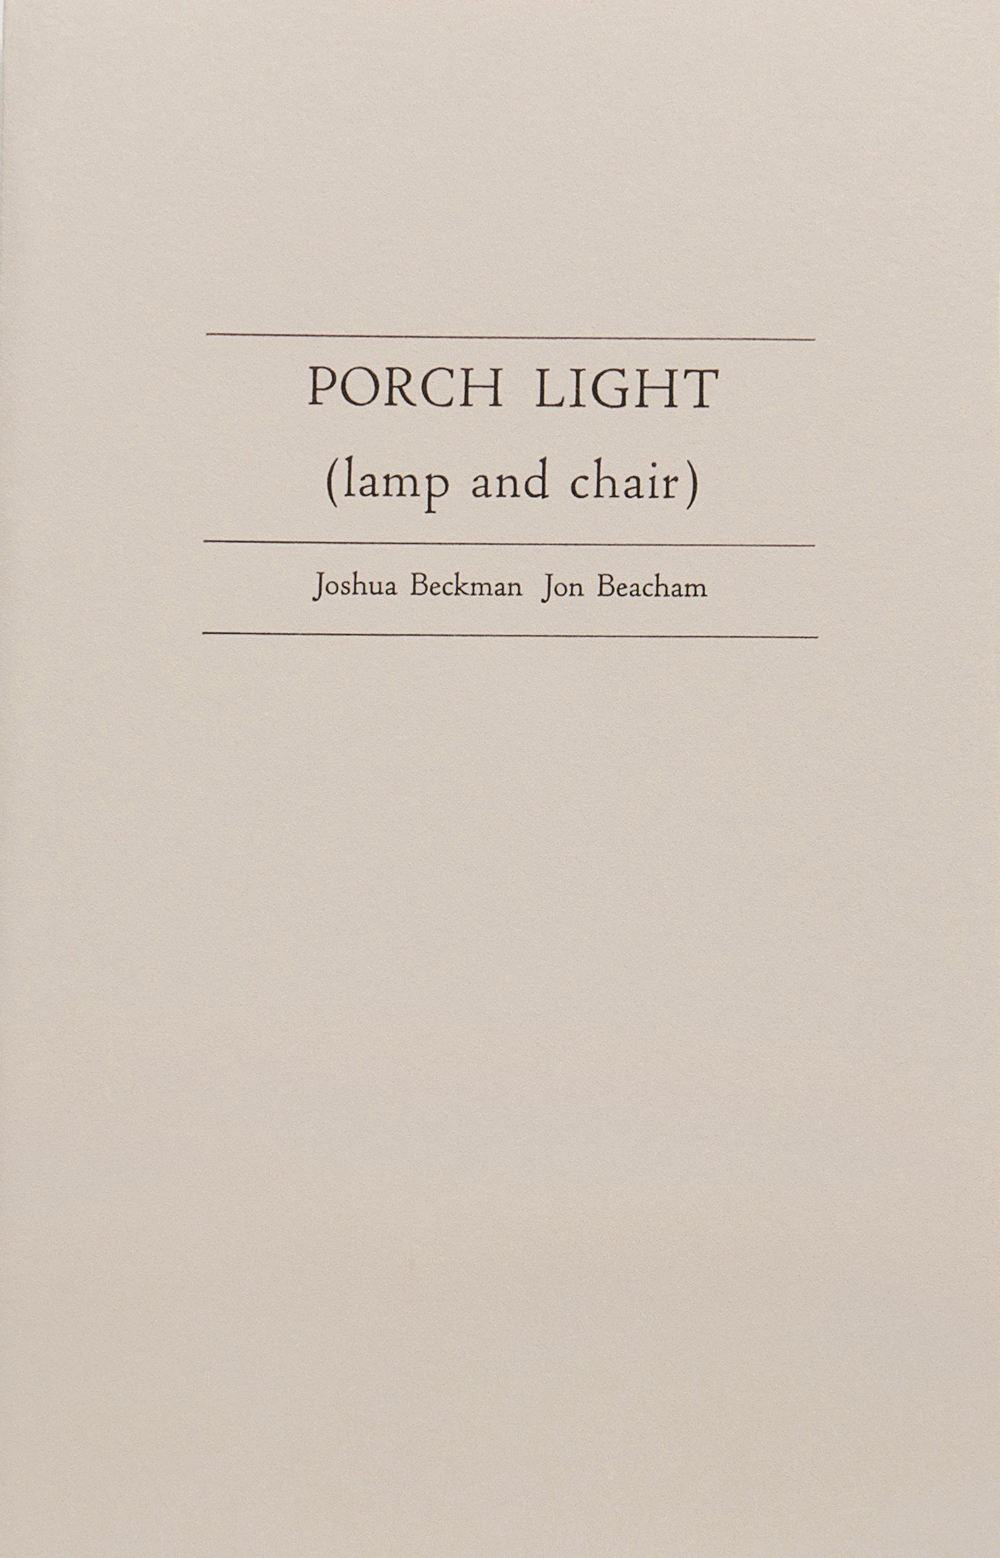 The-Brother-In-Elysium-Joshua-Beckman-Jon-Beacham-Porch-Light-Front-Cover.jpg